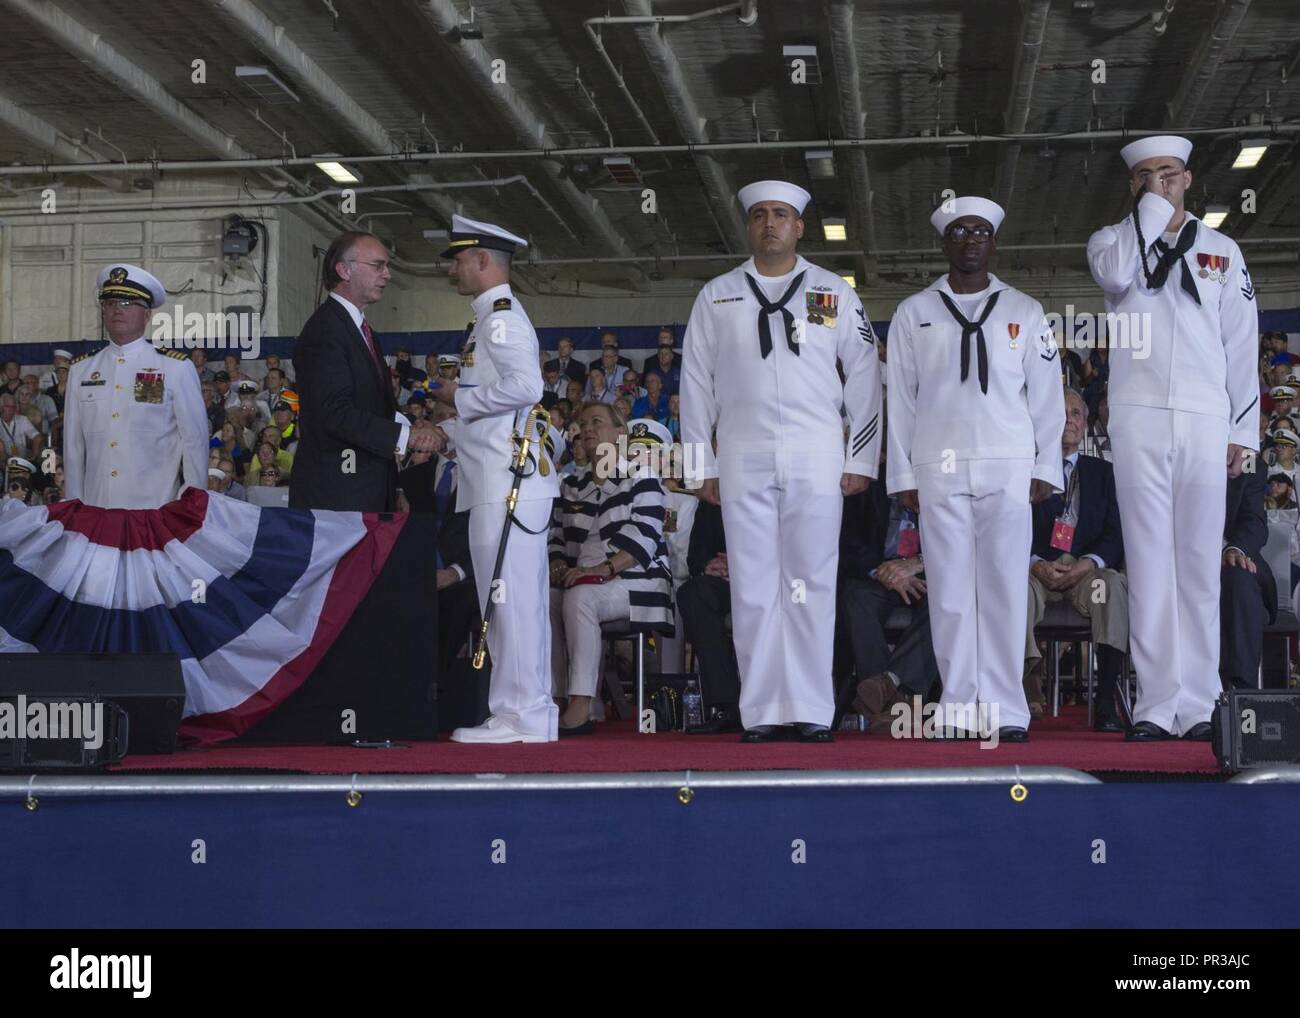 NORFOLK, Va. (July 22, 2017) -- Greg Willard, President of the Ford Foundation, passes a long glass to Lt. Joel Cincotta to assume the first watch onboard the newly commissioned USS Gerald R. Ford (CVN 78). Ford is the lead ship of the Ford-class aircraft carriers, and the first new U.S. aircraft carrier design in 40 years. - Stock Image